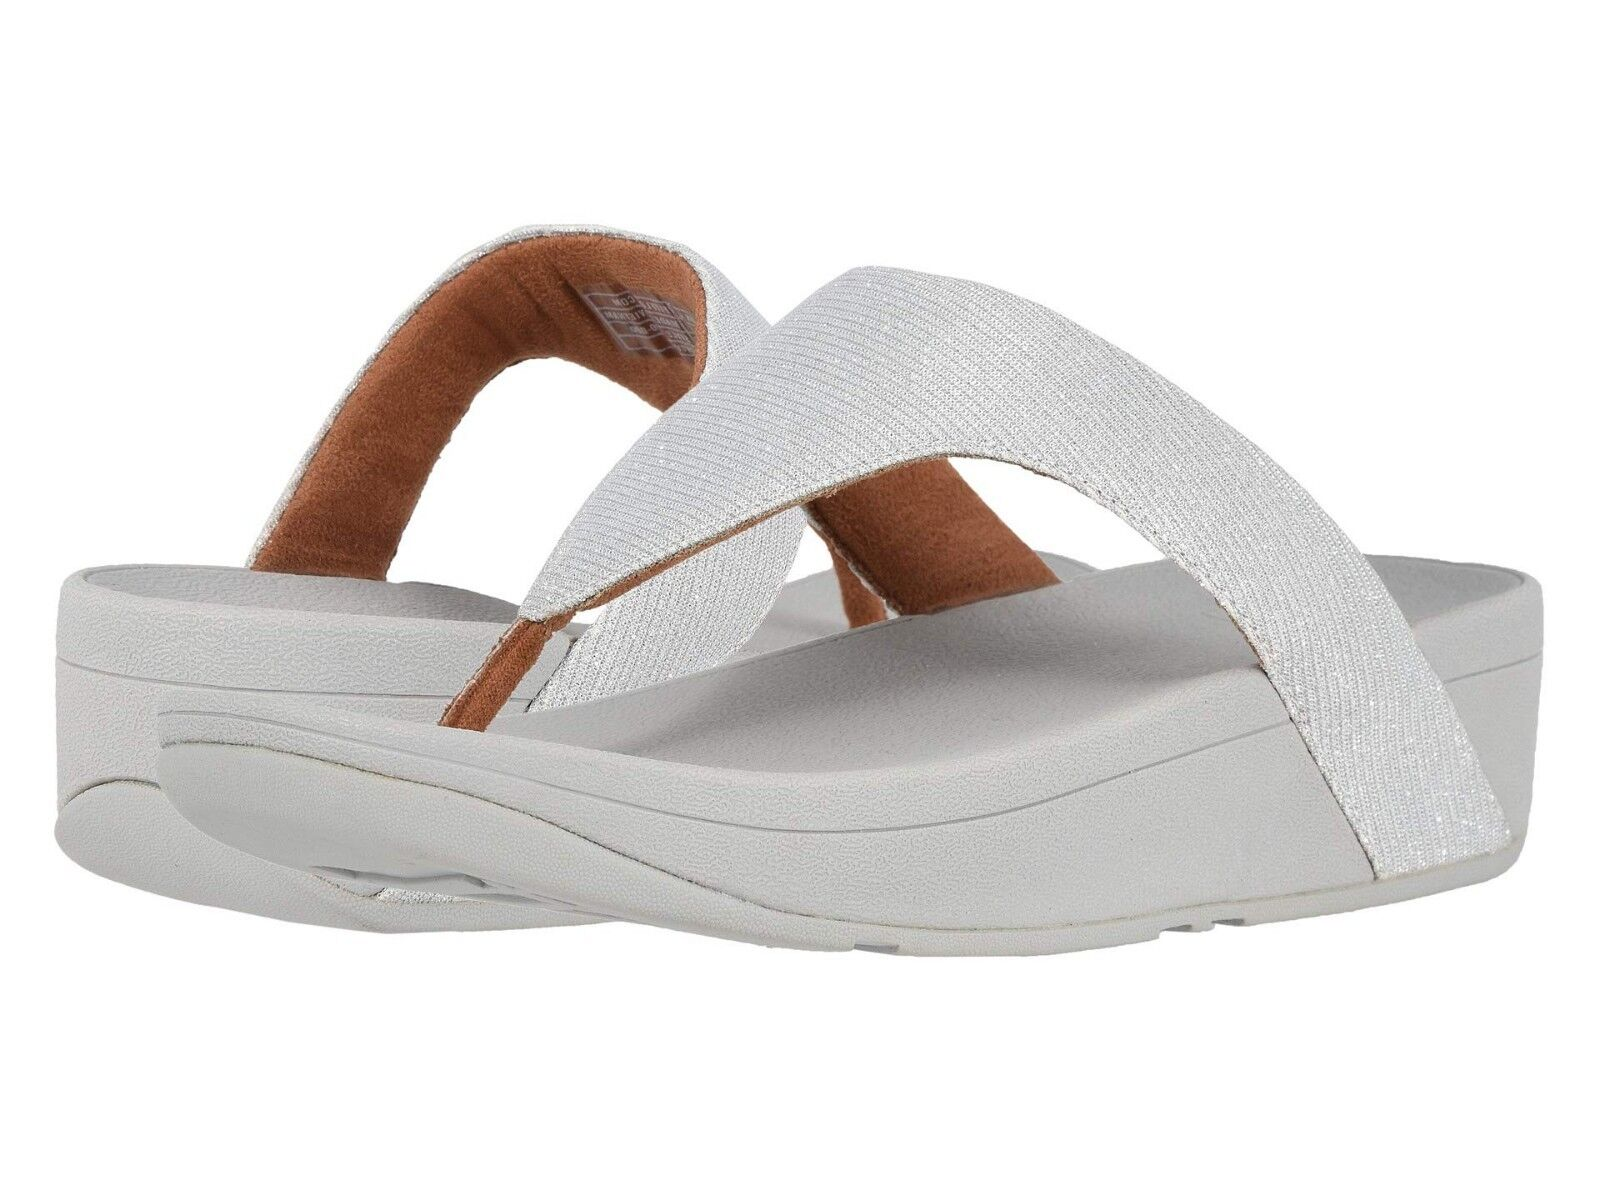 Women's Shoes Fitflop LOTTIE GLITZY THONG Arch Support Sanda